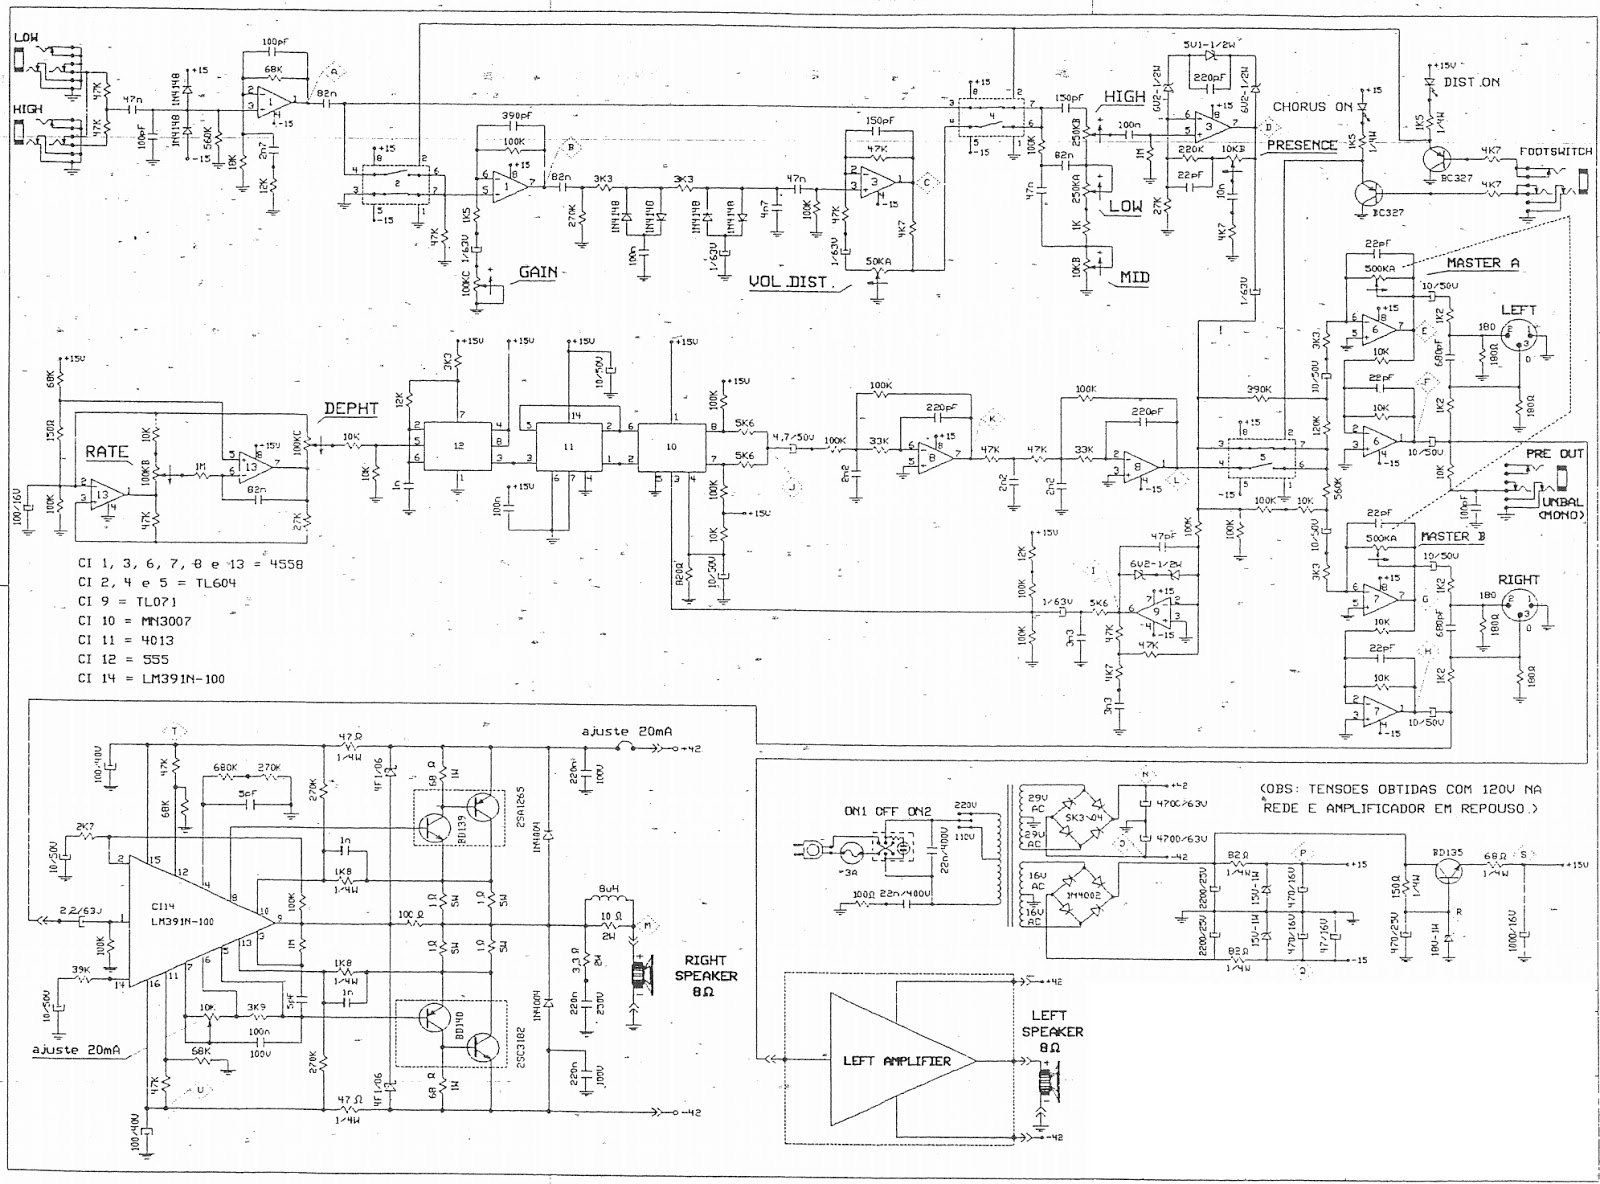 stereo lifier circuit diagram using power transistors schematic Component to DVI Wire Diagram power transistors with lm391 or at the entrance pre